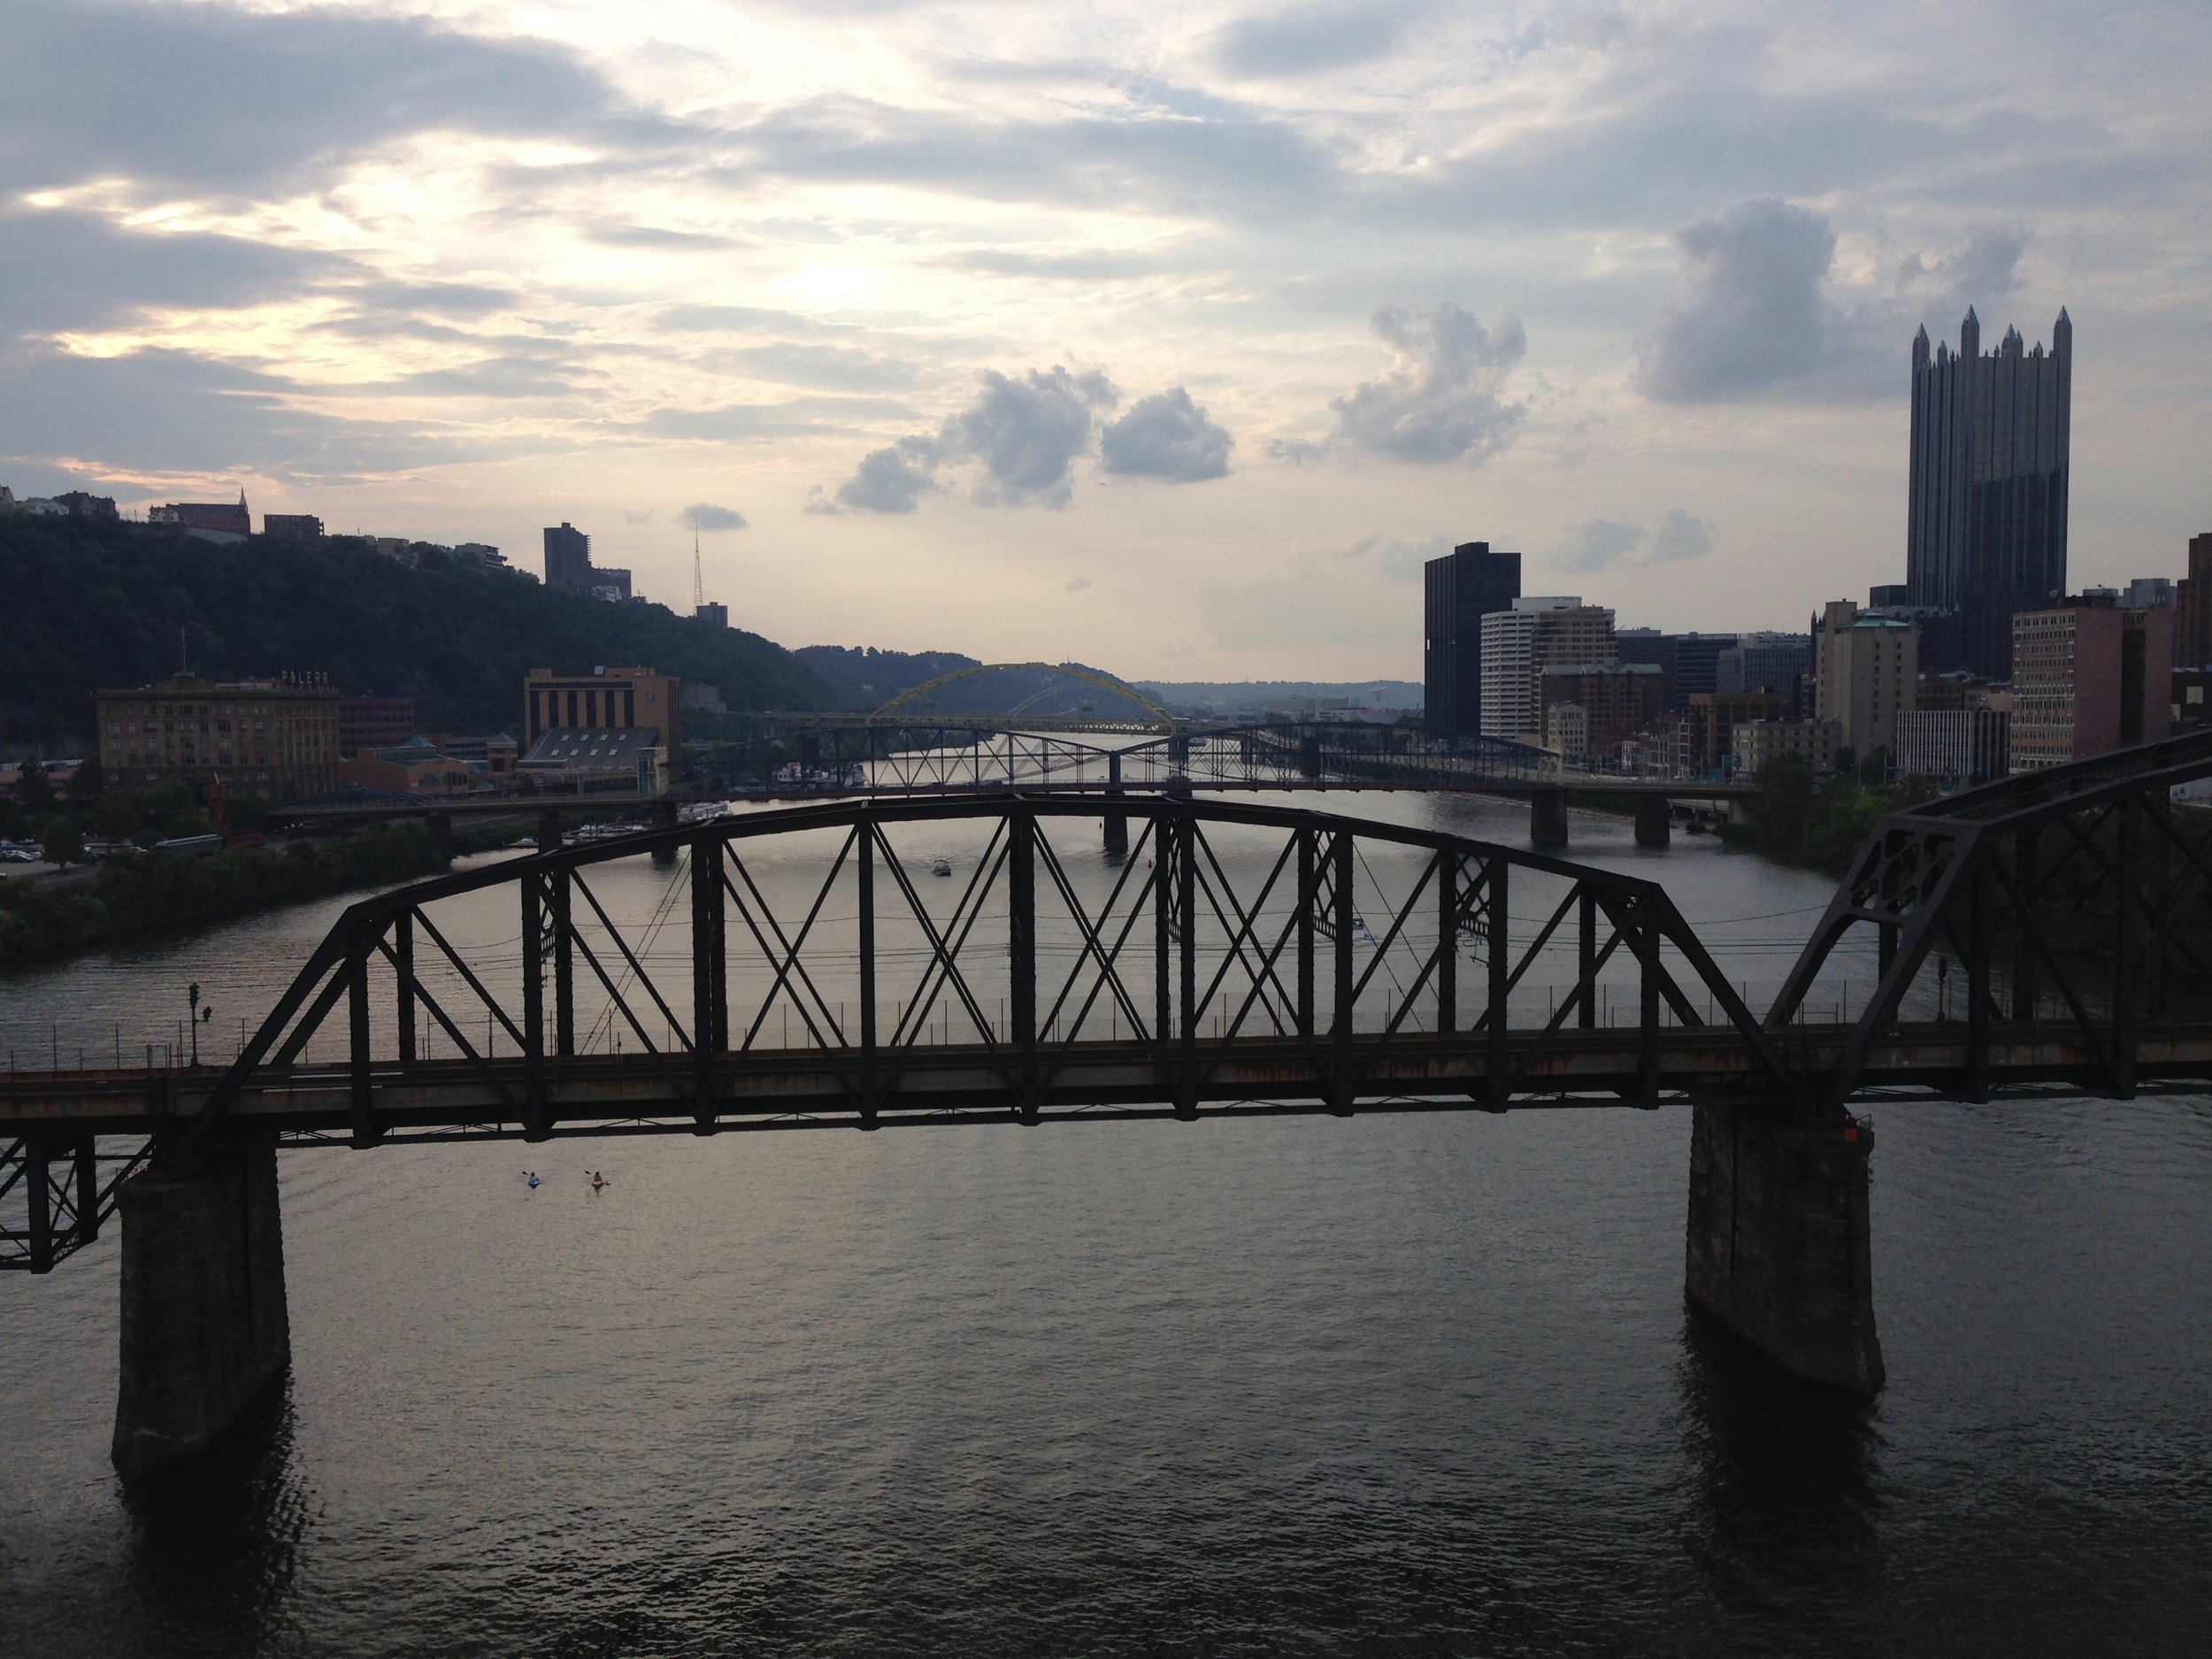 8/30/15 view from Liberty Bridge